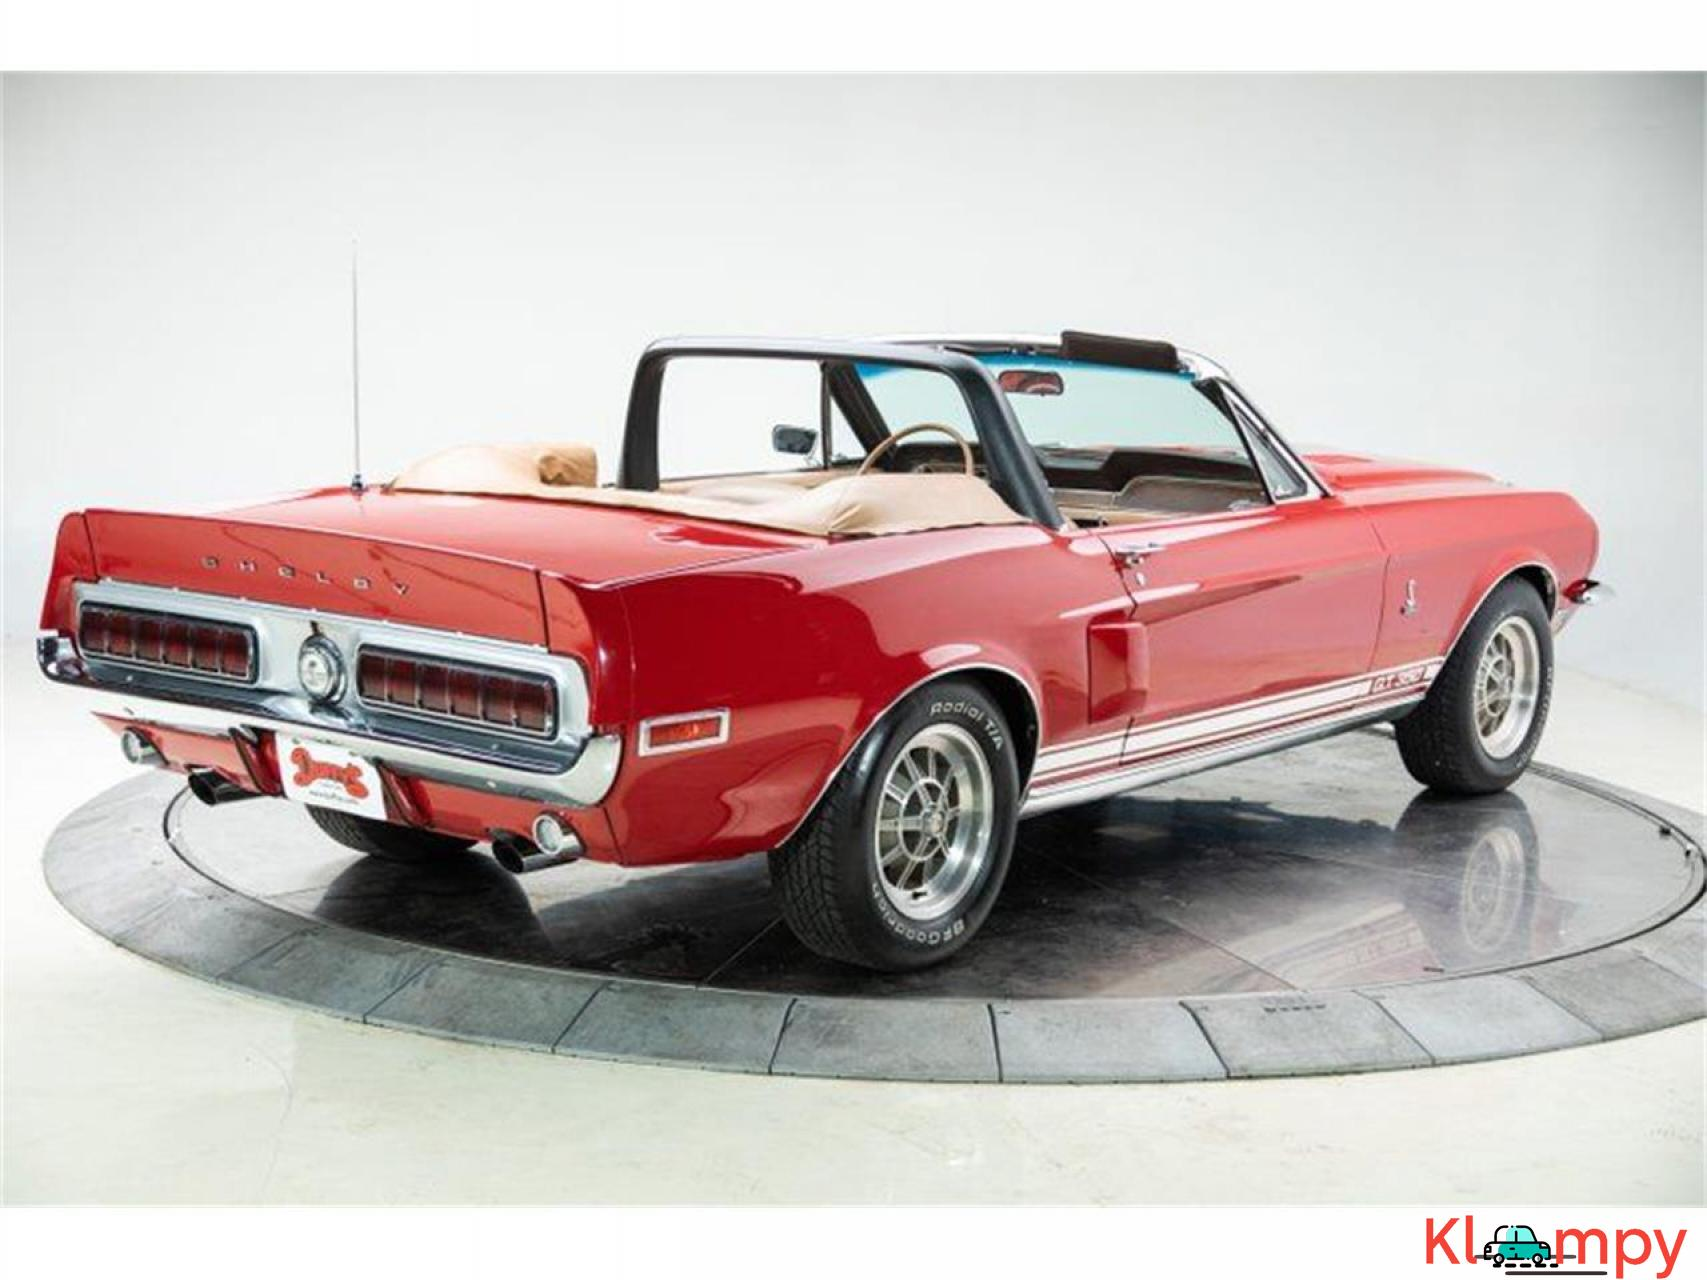 1968 Ford Mustang umbers matching 302 3 speed - 20/20